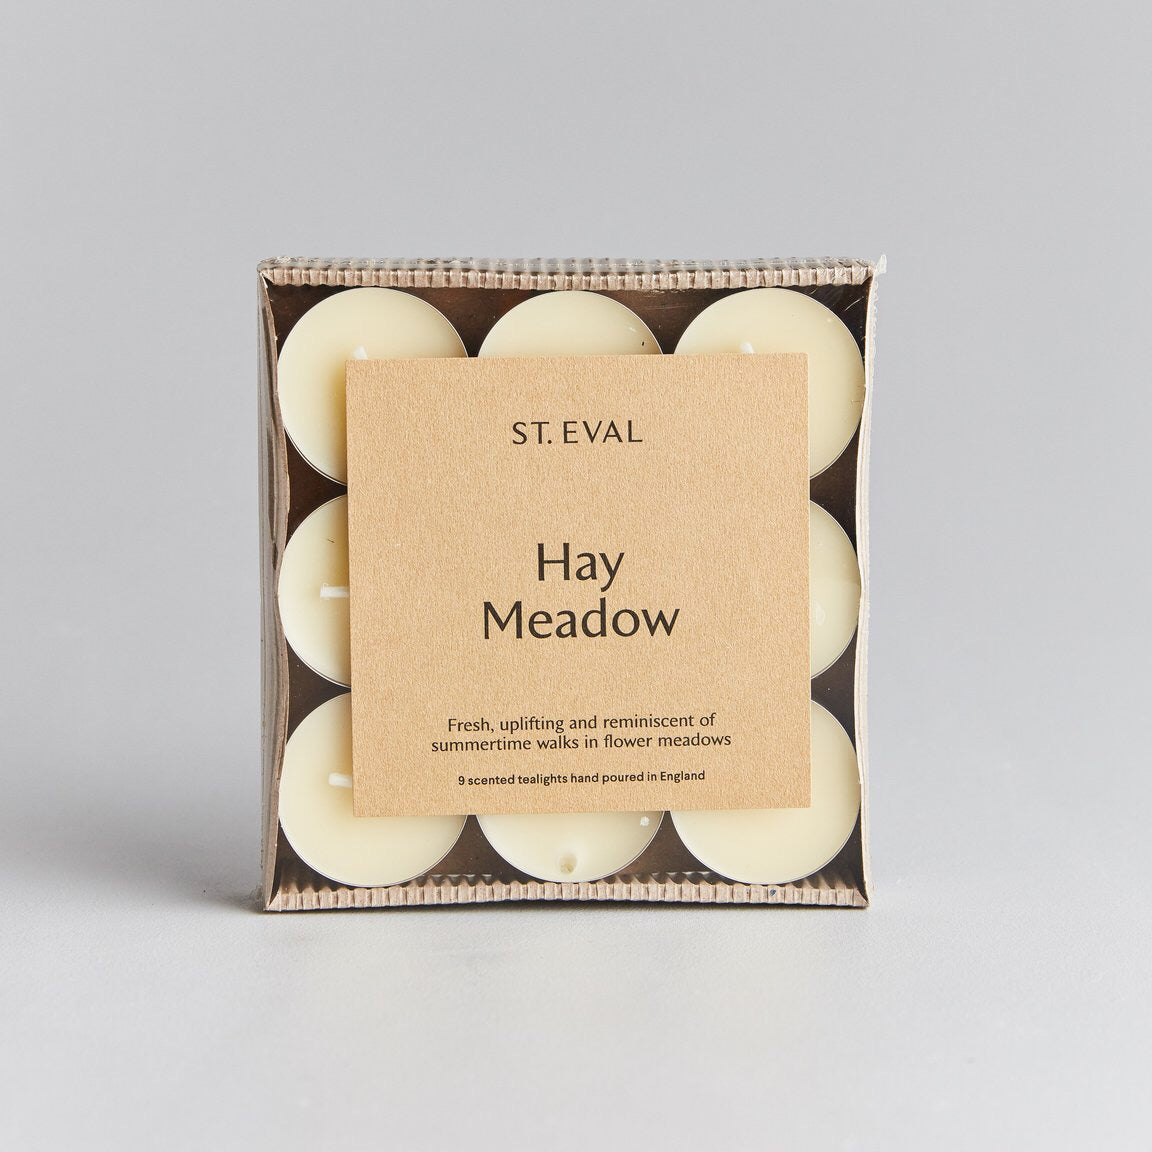 cadeauxwells - Scented Tealight x 9 - Hay Meadow - St Eval Candles -